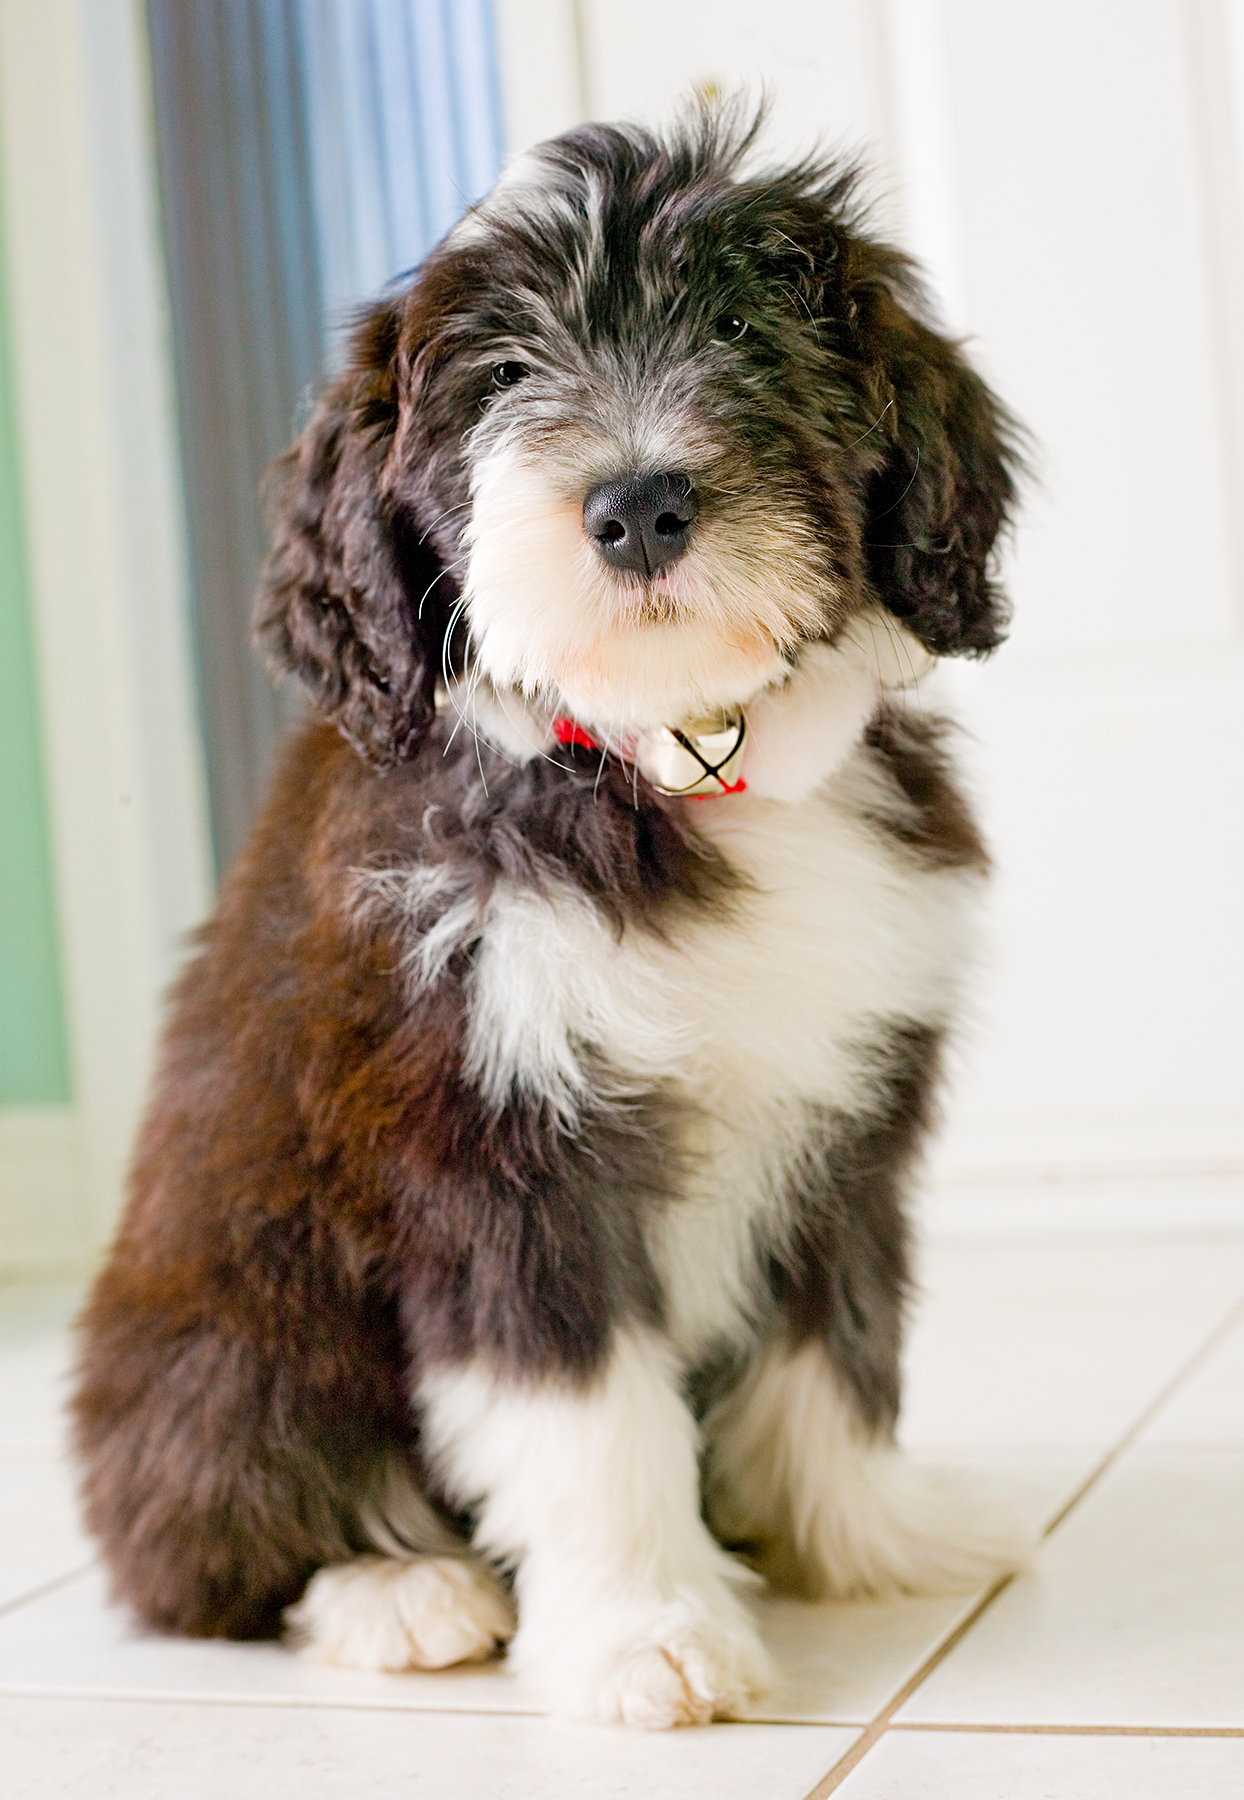 bearded collie puppy sitting on a white tile floor wearing a collar with a bell